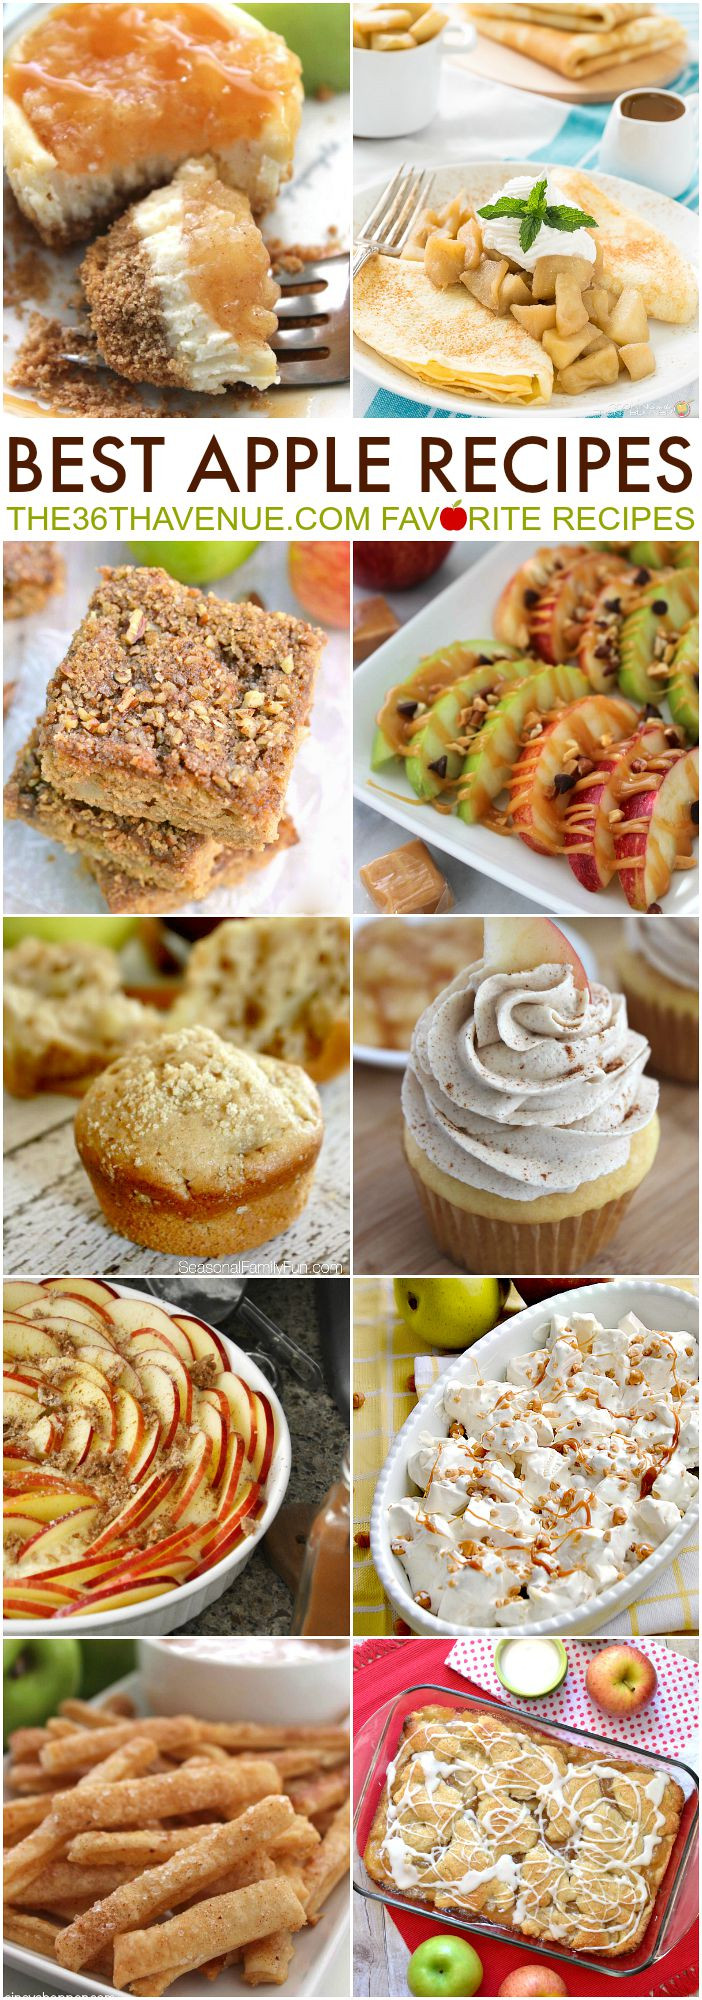 Apple Recipes For Fall  Best Apple Recipes The 36th AVENUE